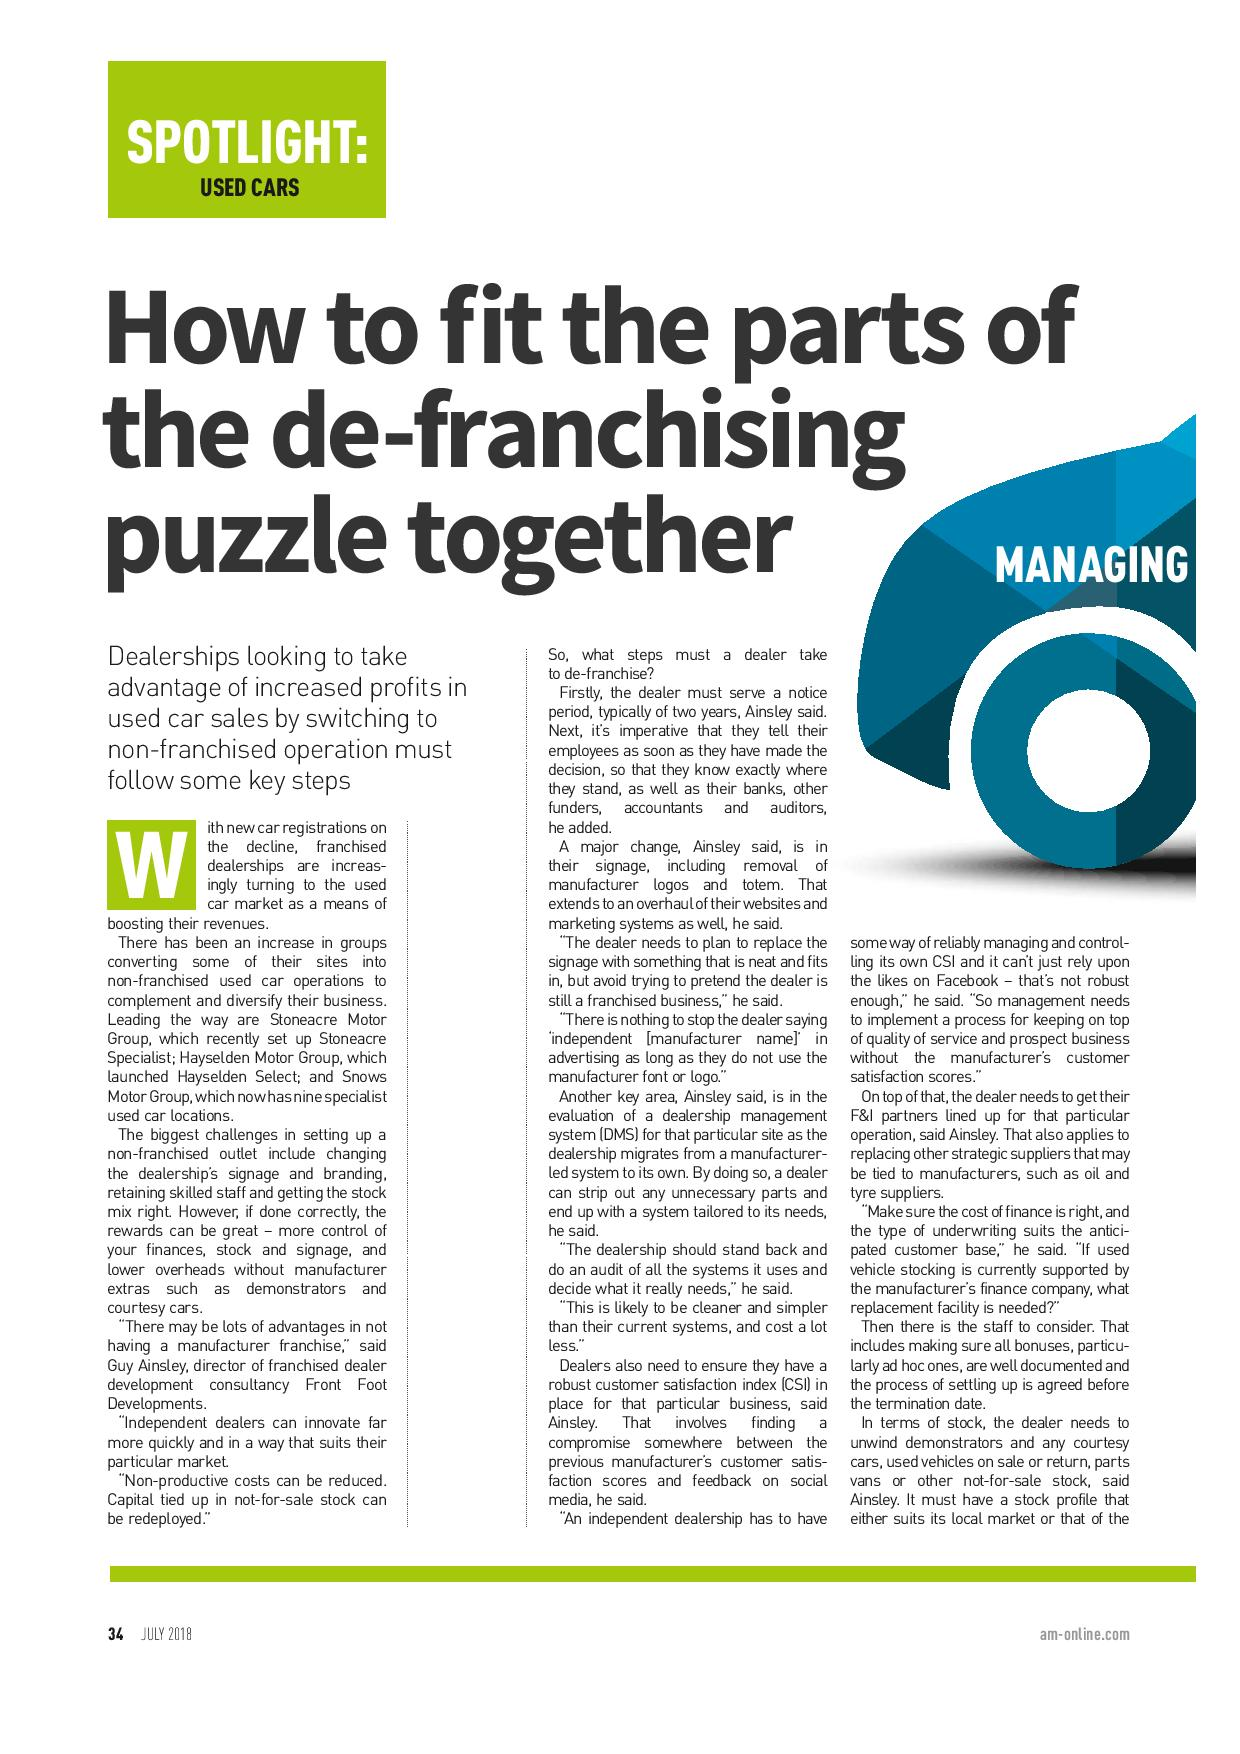 how-to-fit-the-parts-of-the-de-franchising-puzzle-together-page-001